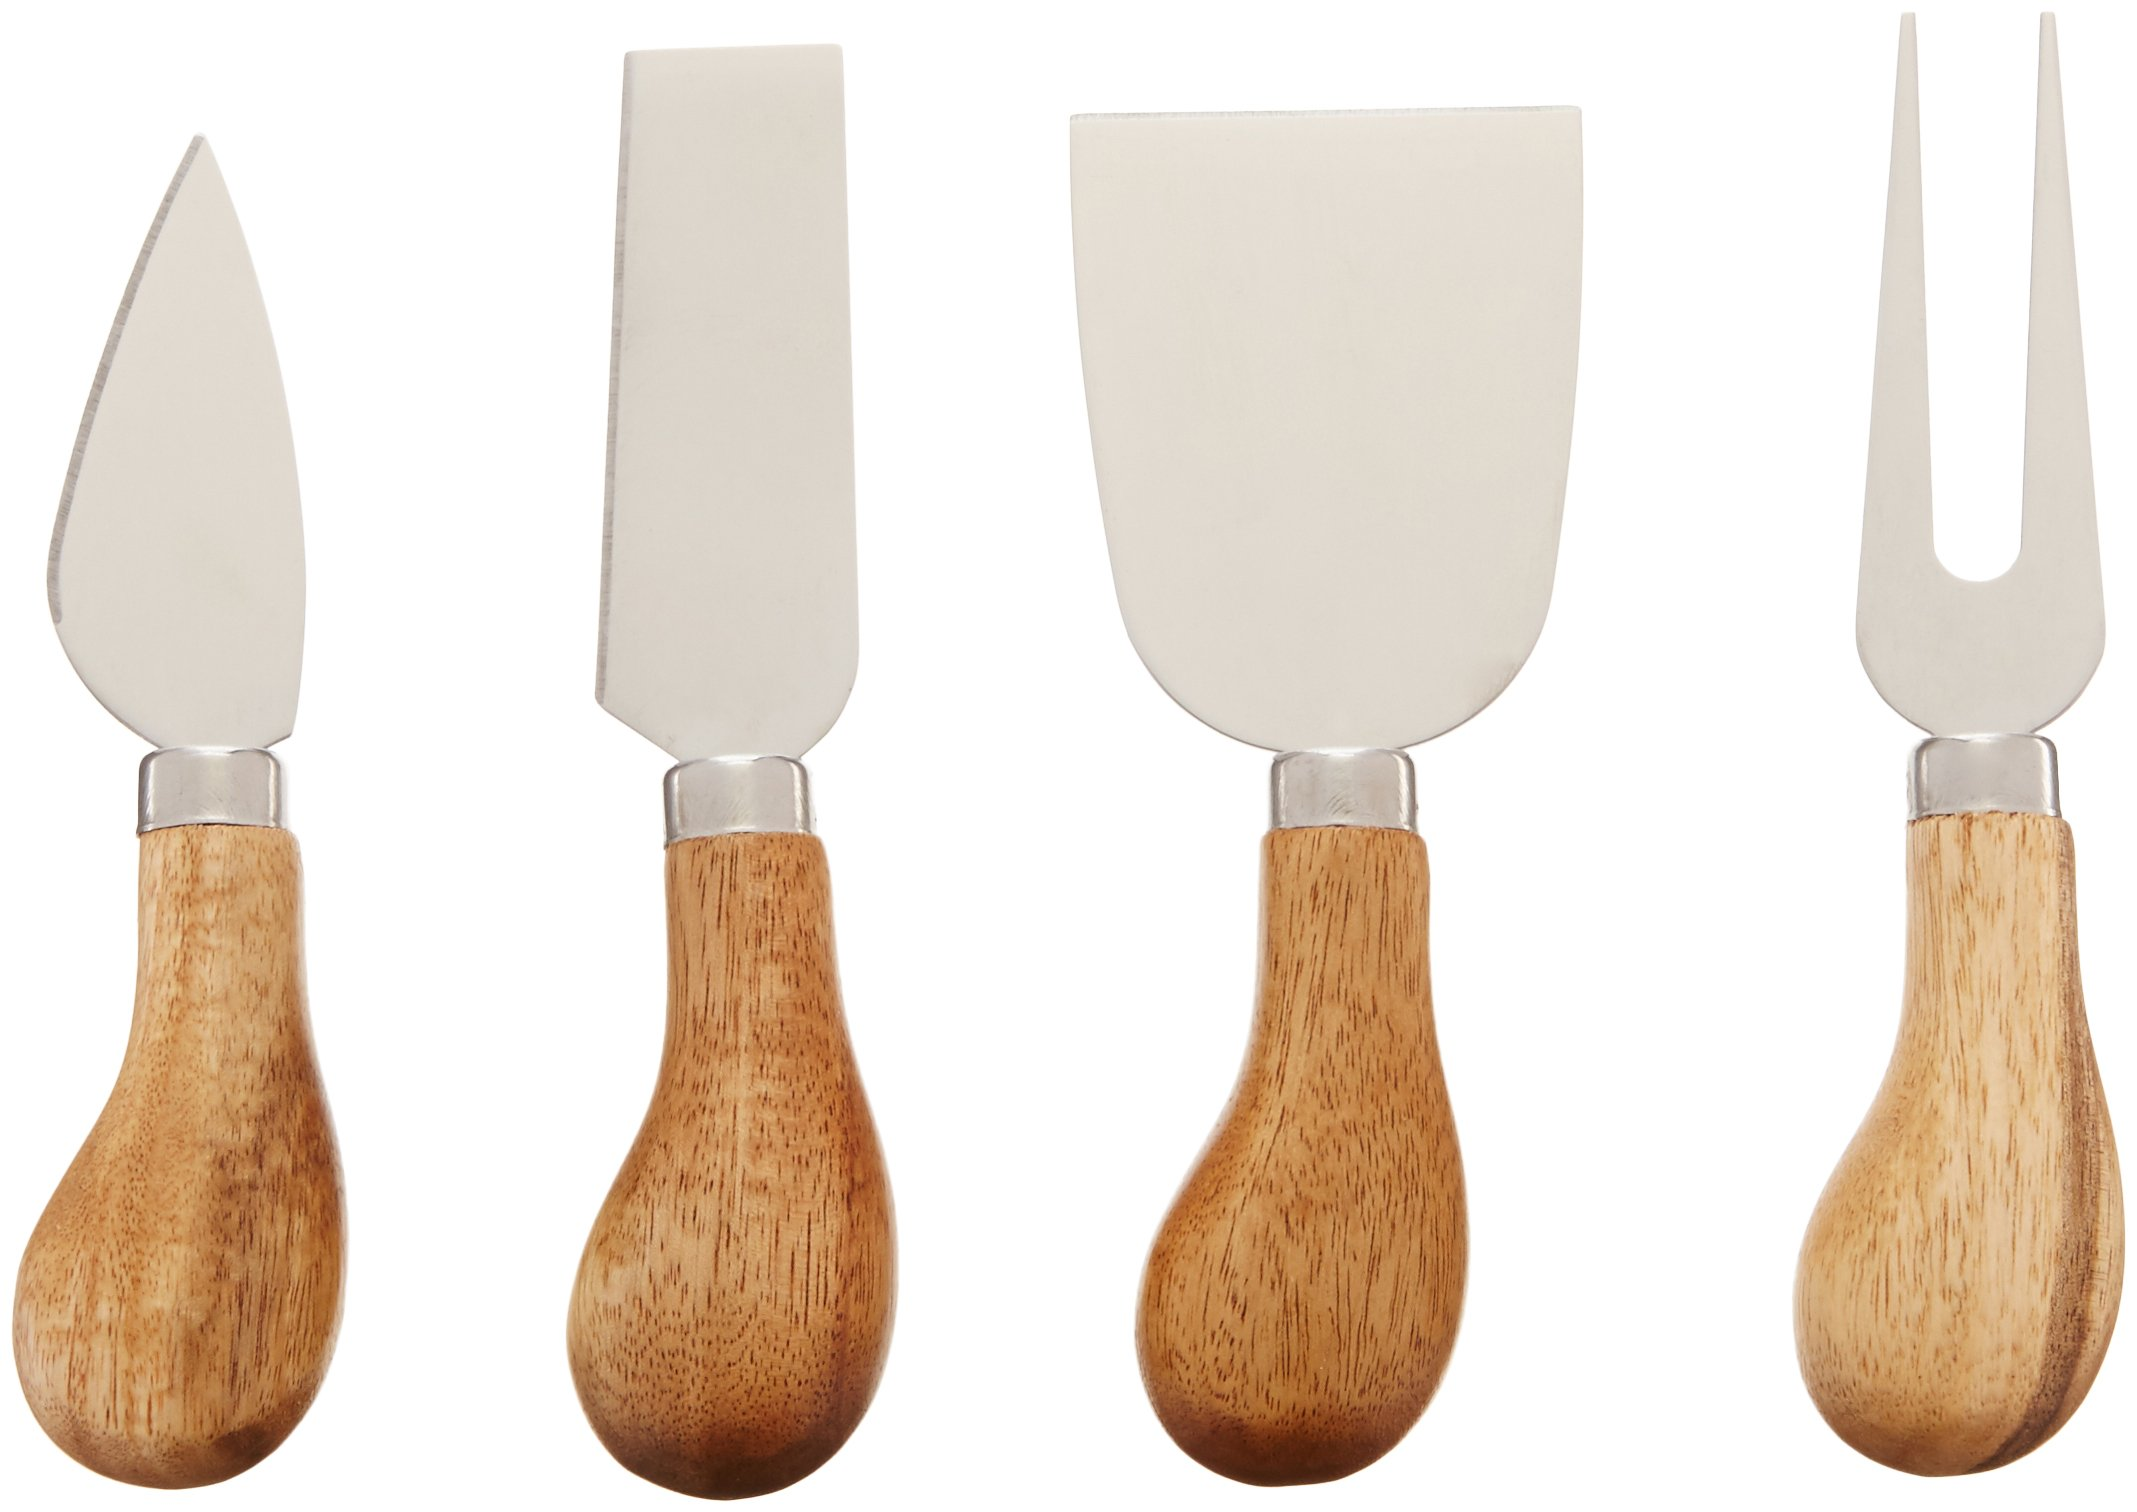 Rustic Farmhouse Gourmet Cheese Knives and Serving Tools by Twine – (4 Cheese Tools)